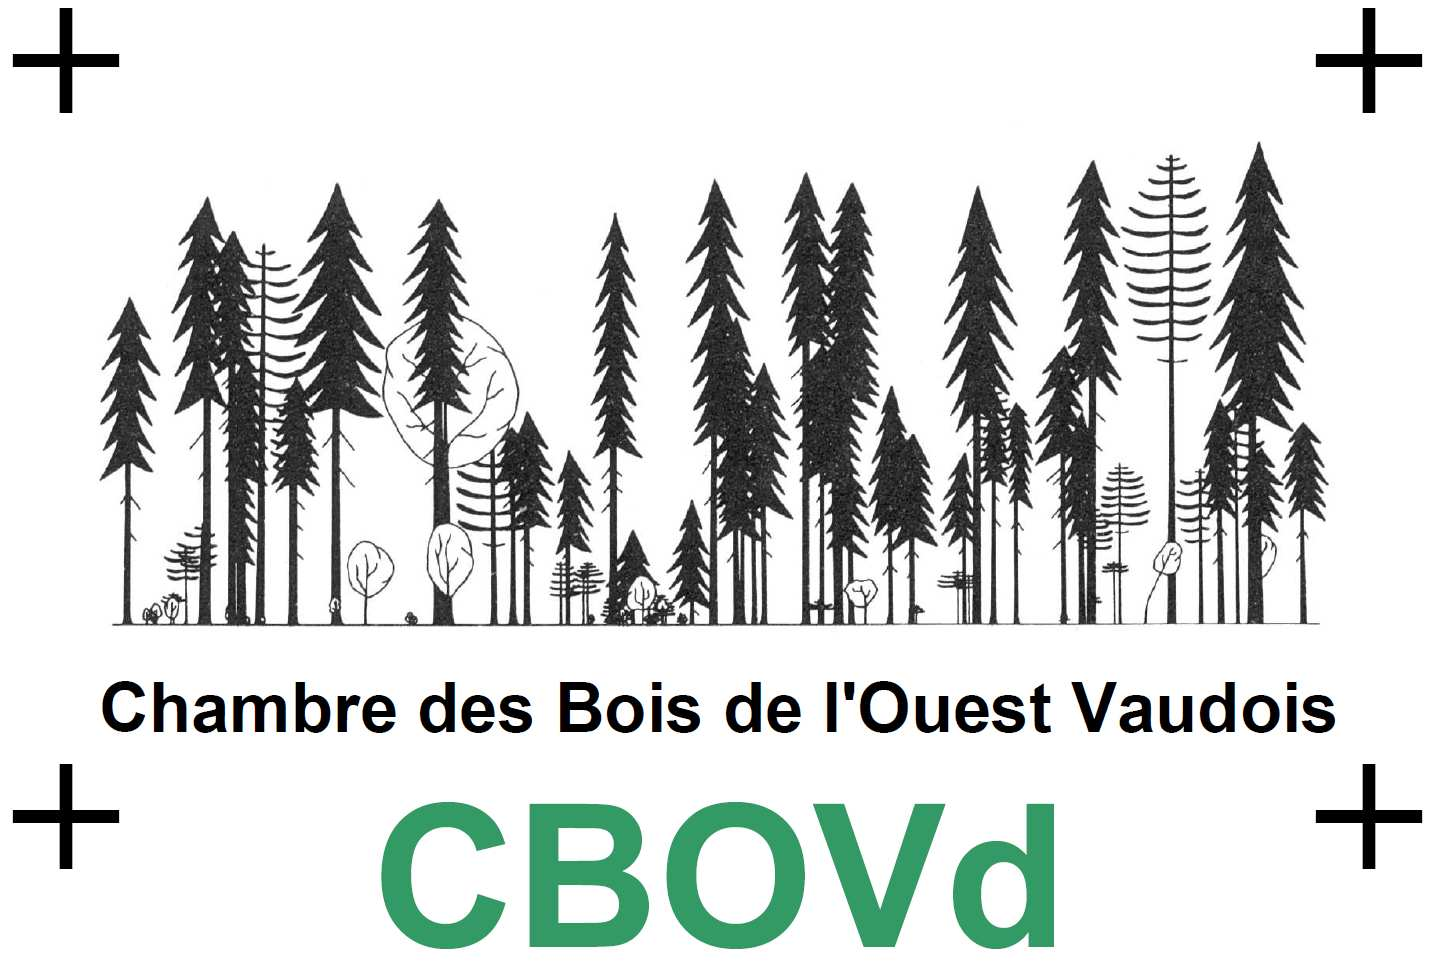 Logo CBOVD 20142 Page 1 Image 0001